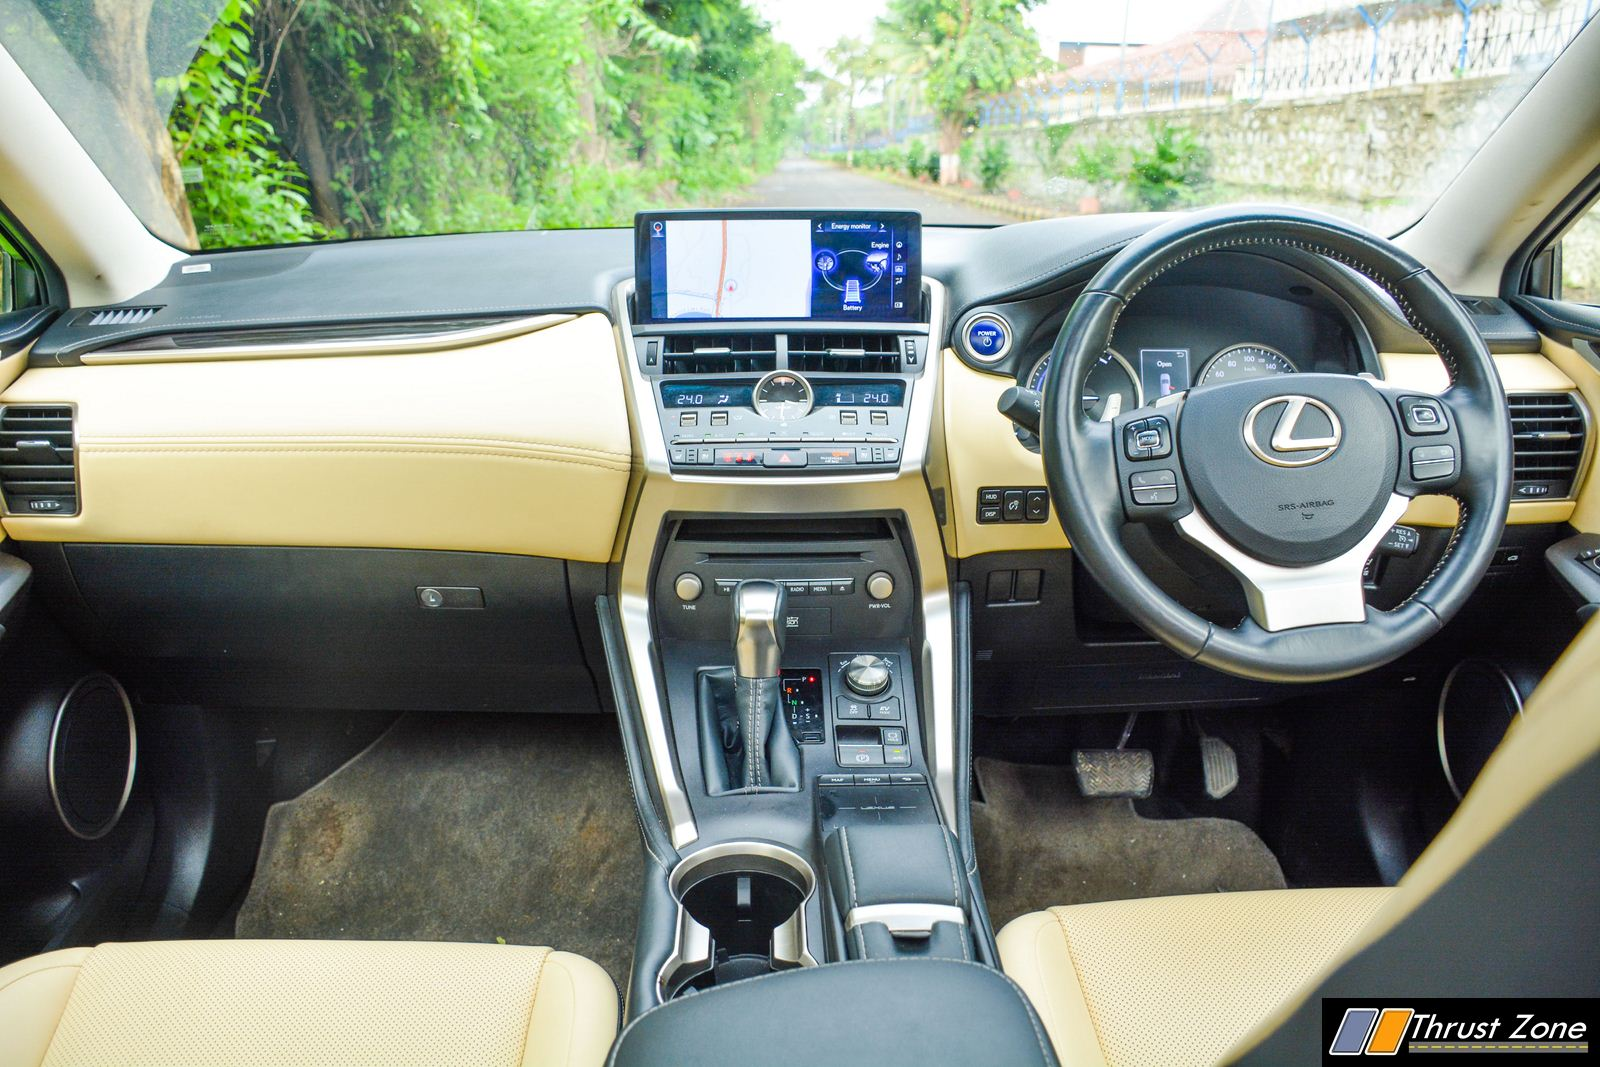 https://www.thrustzone.com/wp-content/uploads/2018/07/2018-Lexus-NX300h-India-Review-14.jpg